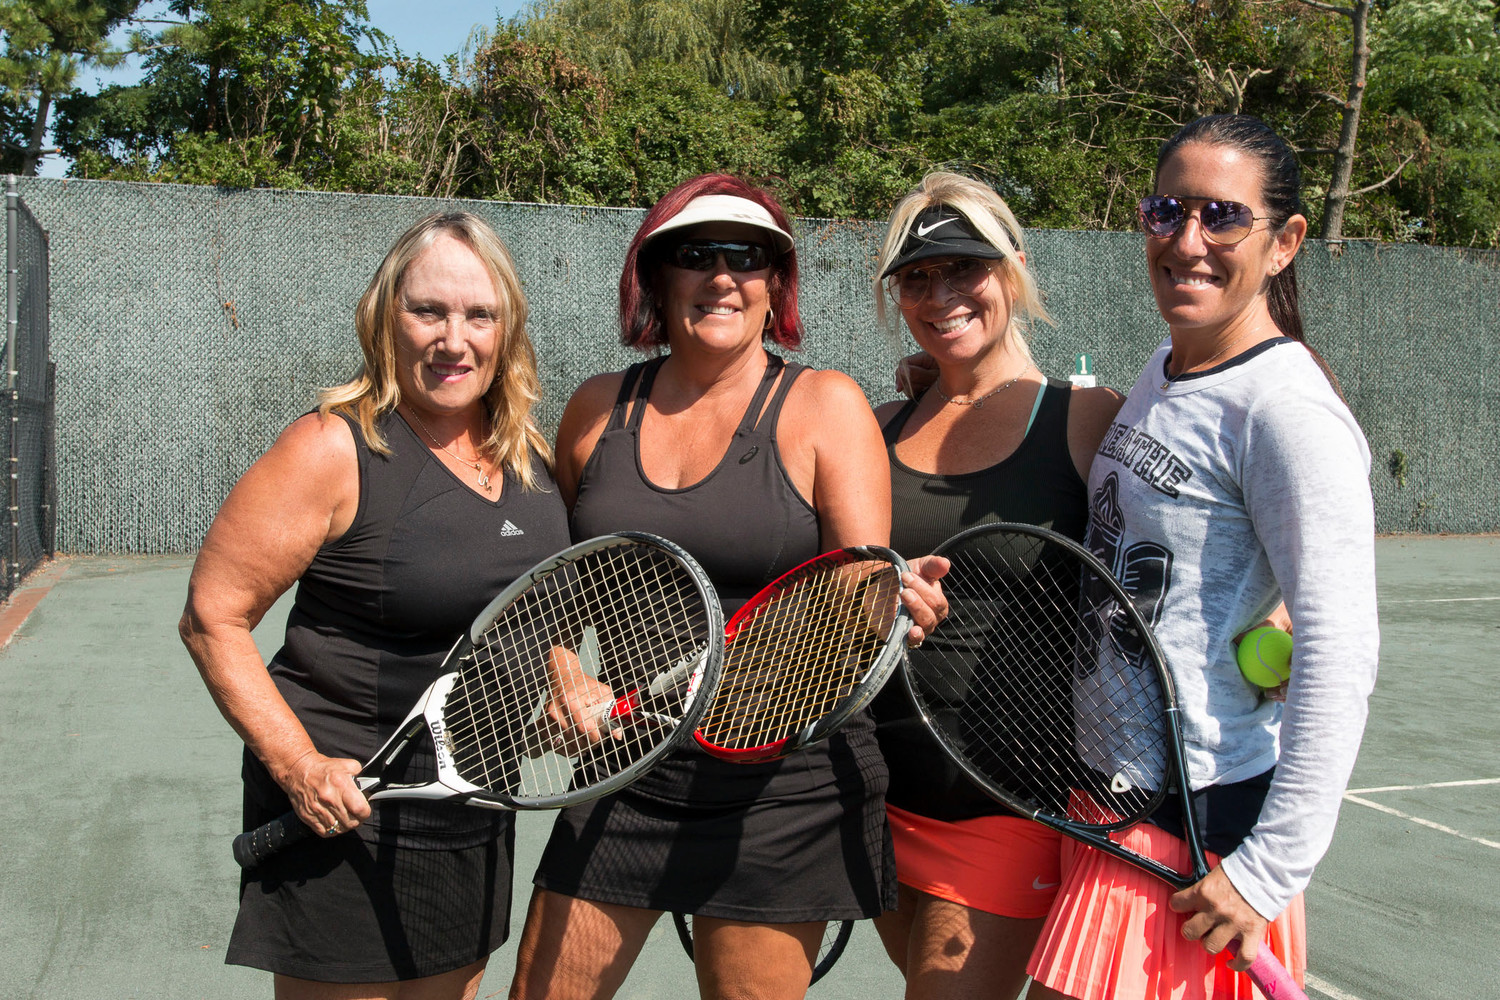 The summer tennis season came to an end at the Lawrence Yacht & Country Club with three doubles tournaments. From left were Audrey Ciuffo, Anna Wilson, Shanon Blue and Mariam Lieber who played in the A championship.